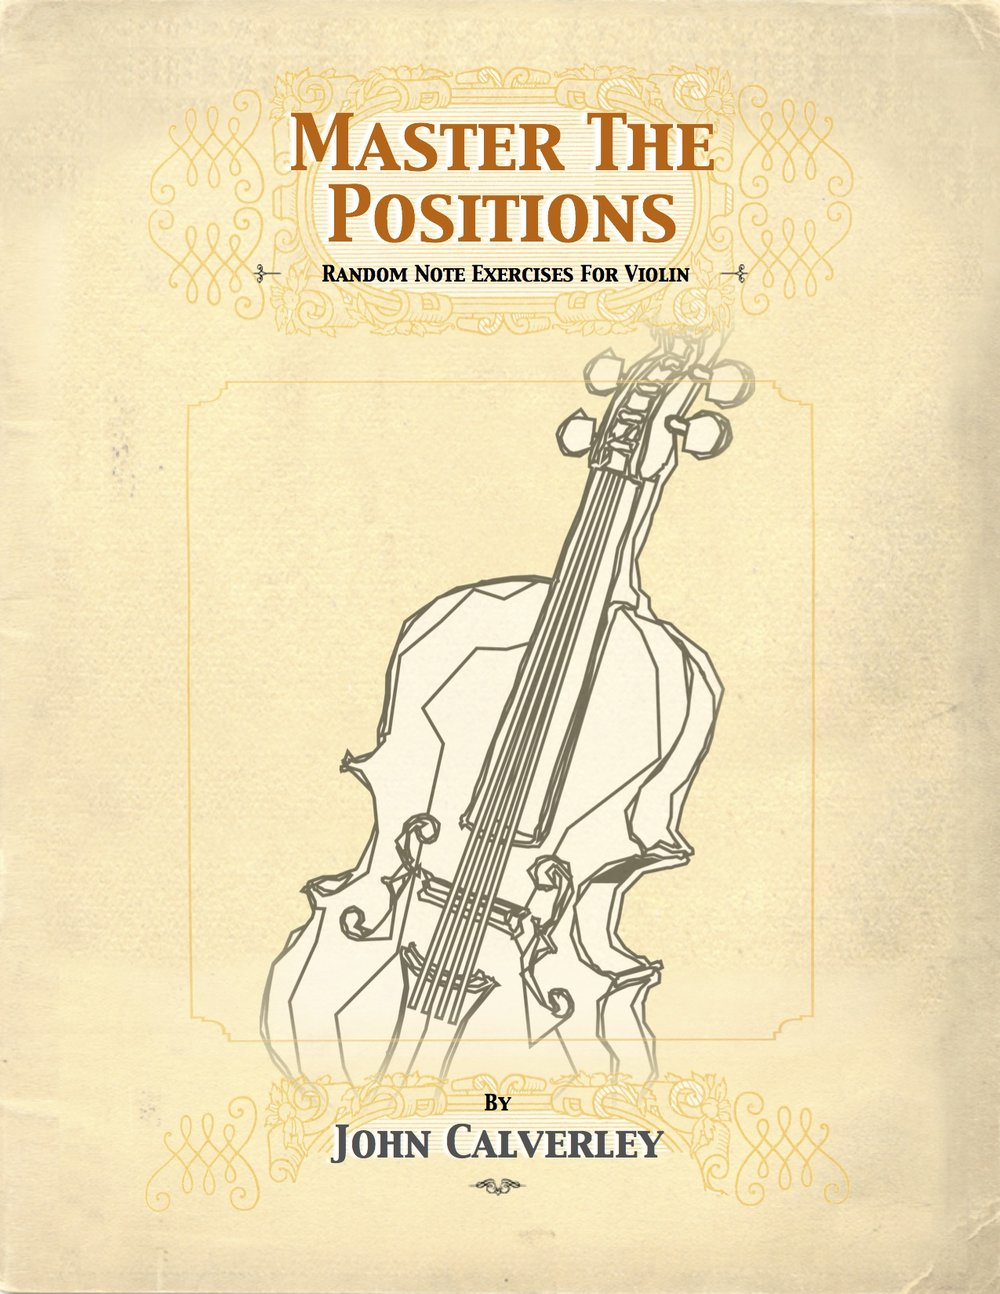 Master the Positions - A collection of exercises designed to challenge you in positions 1 through 8 using the natural notes.Most of us rely on identifying the interval between notes to find our way through music in higher positions. Violinist will at times sacrifice an easier fingering, favoring instead a position that is more comfortable to read. Because these are random notes as opposed to melodies, you will be encouraged to memorize the individual notes in each position and rely less on interval recognition. Price: $15